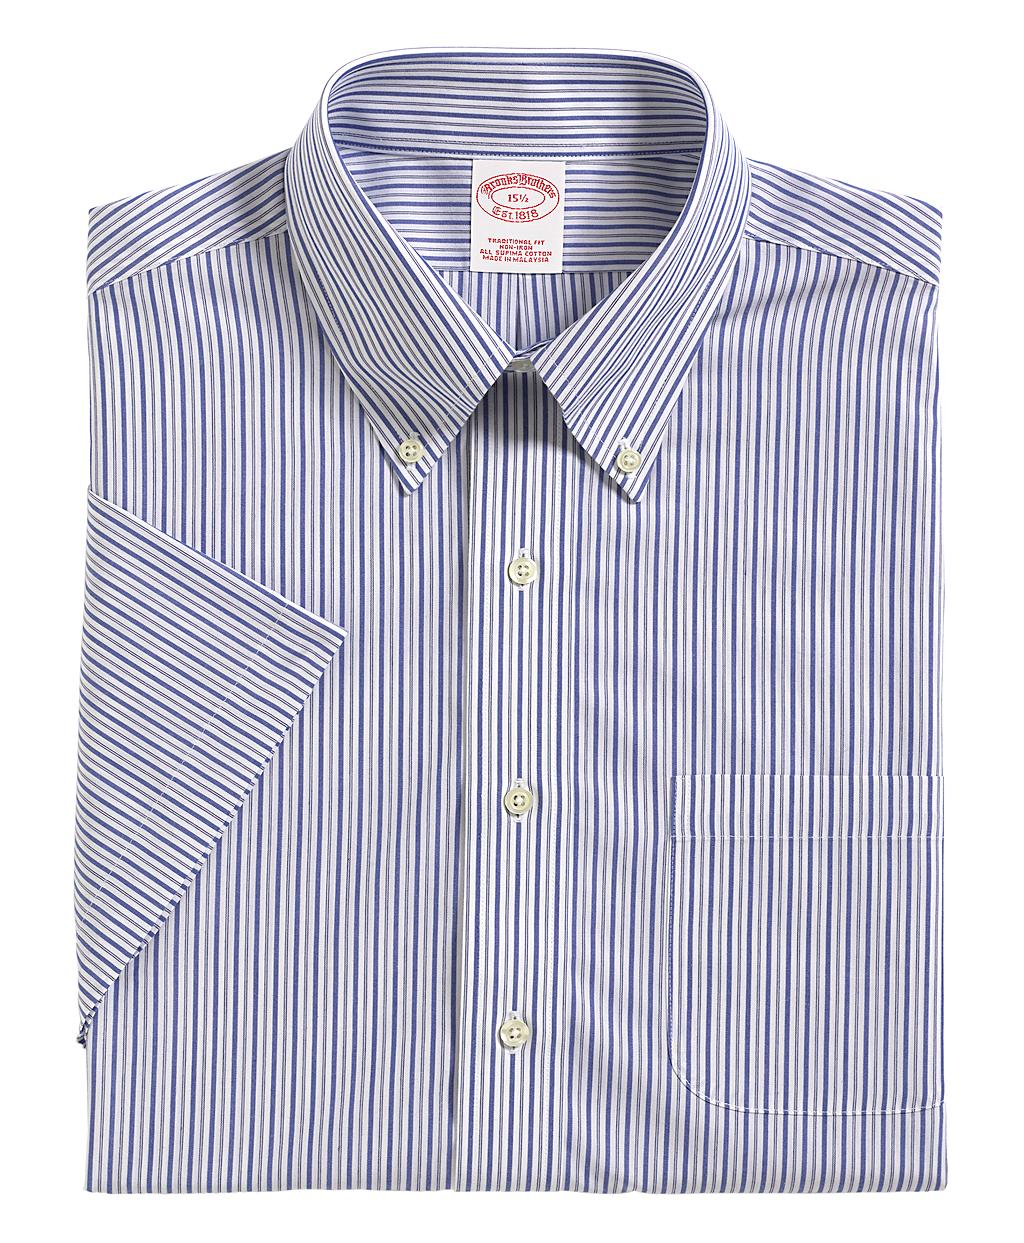 Brooks brothers allcotton noniron traditional fit for Brooks brothers dress shirt fit guide